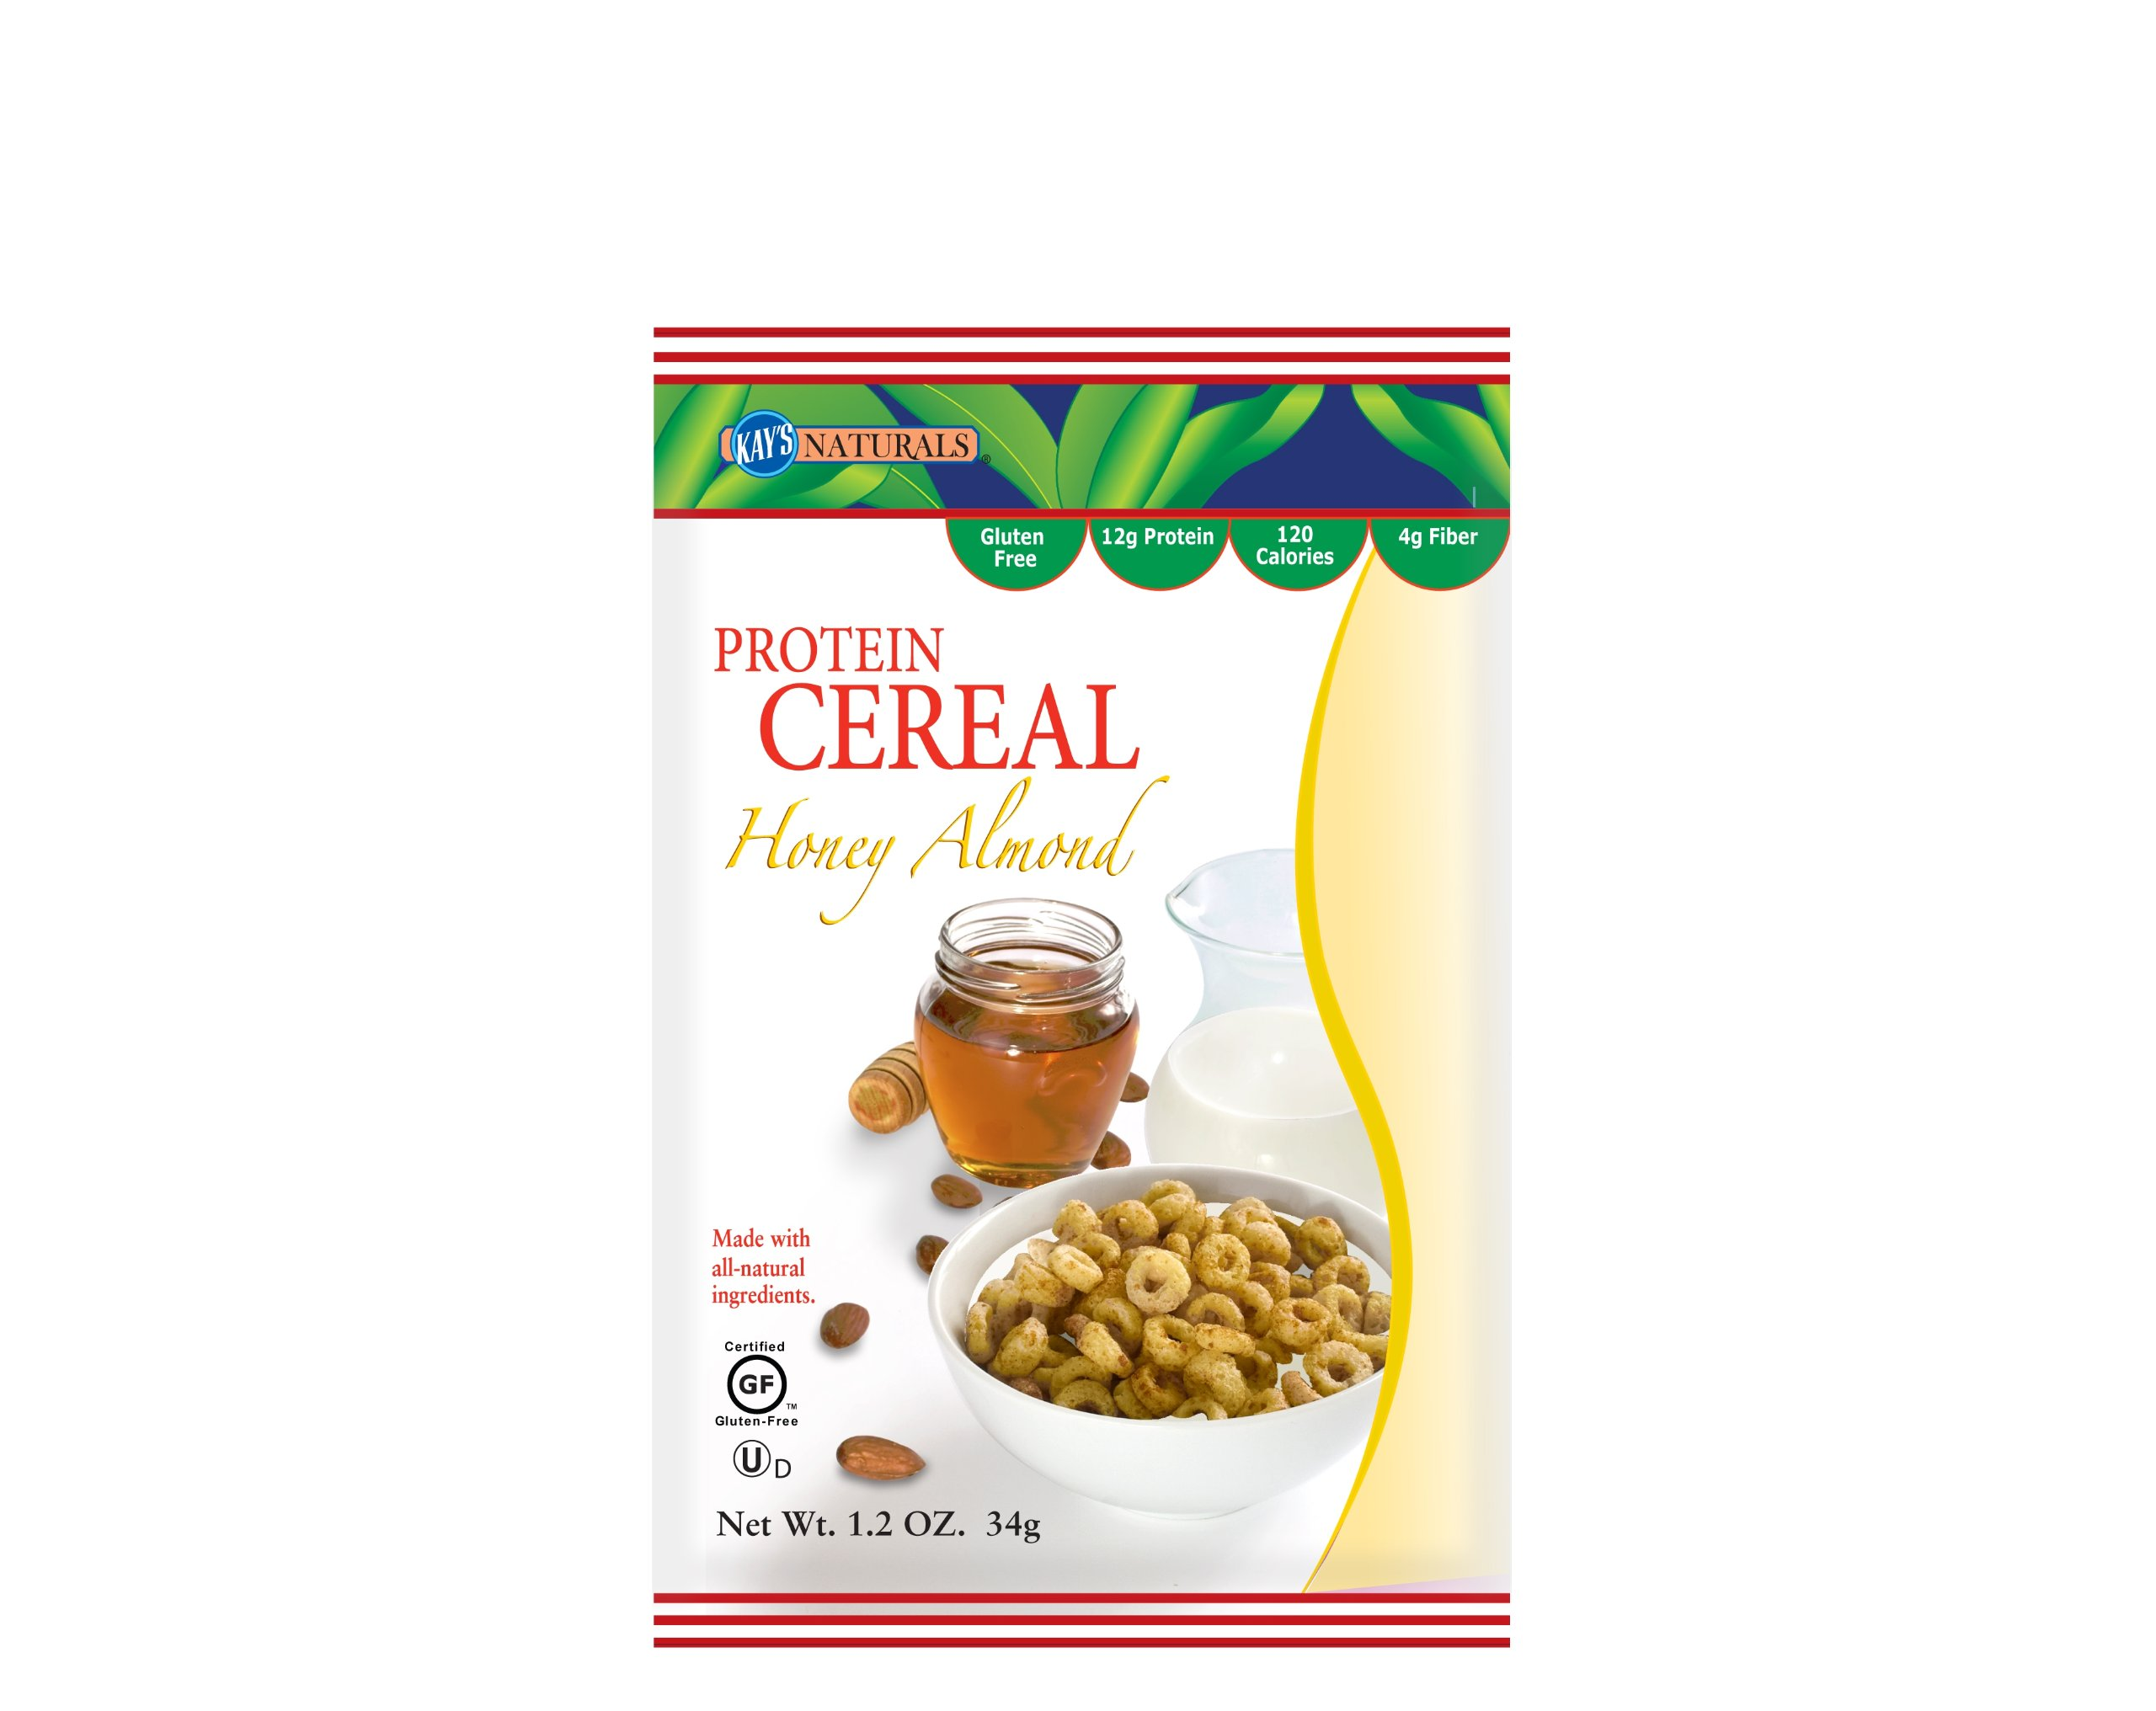 Kay's Natural Protein Cereal - Honey Almond Flavor, 1.2-Ounce (Pack of 12)